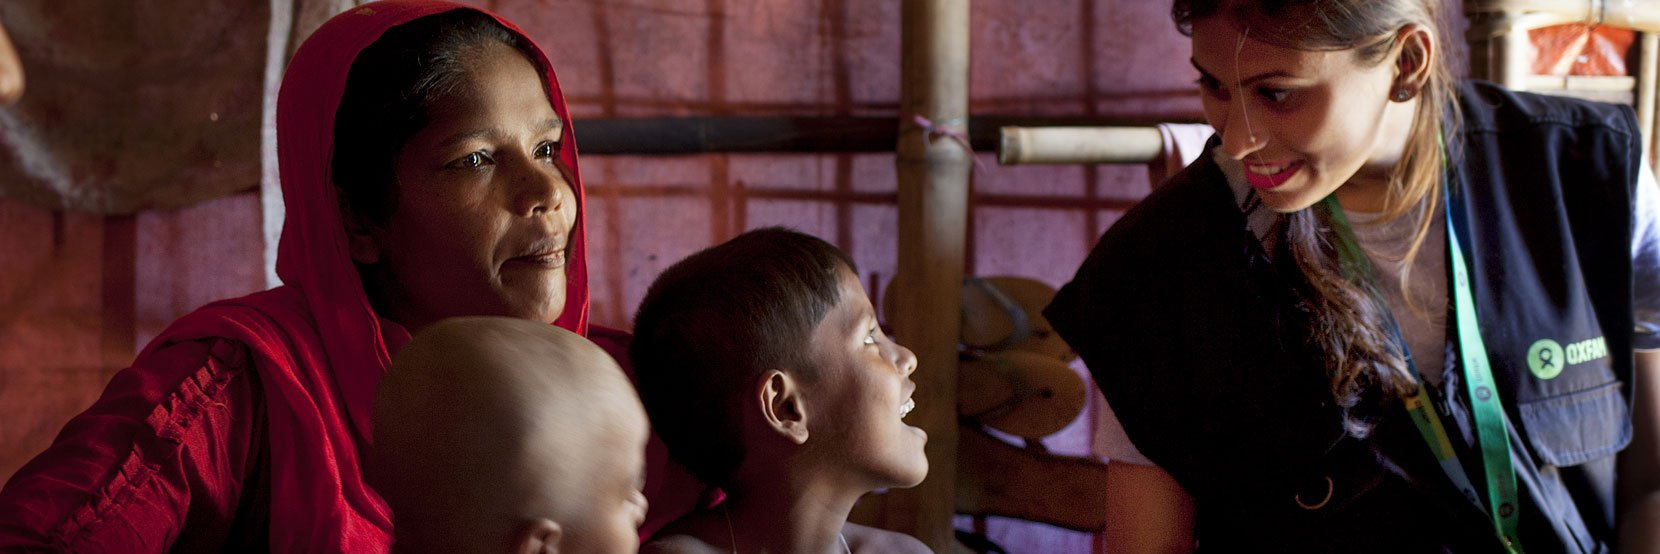 Iffat, humanitarian public health promoter for Oxfam, talks to Rohingya refugee in Cox's Bazar, Bangladesh.